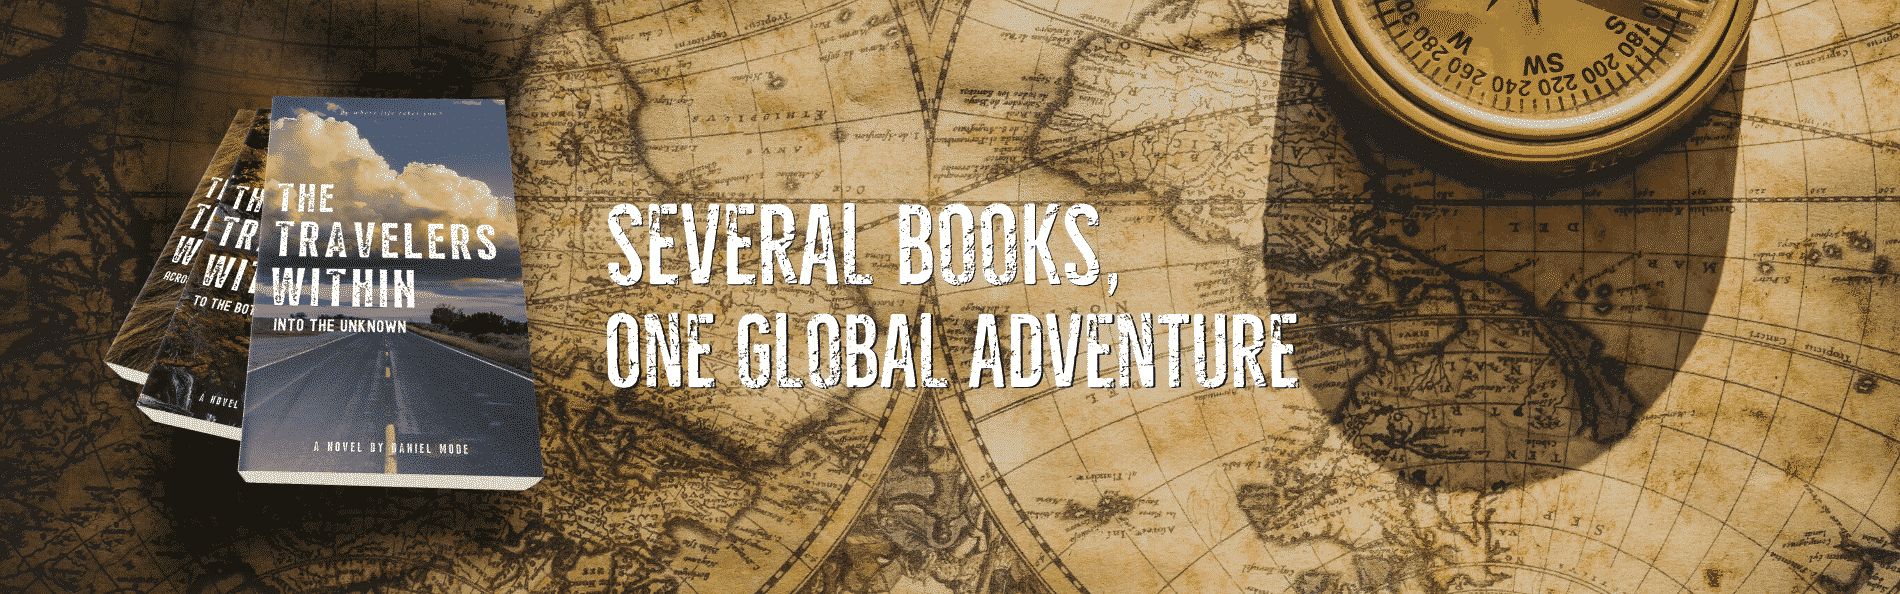 The Travelers Within - Adventure Fiction - Adventure Book Series